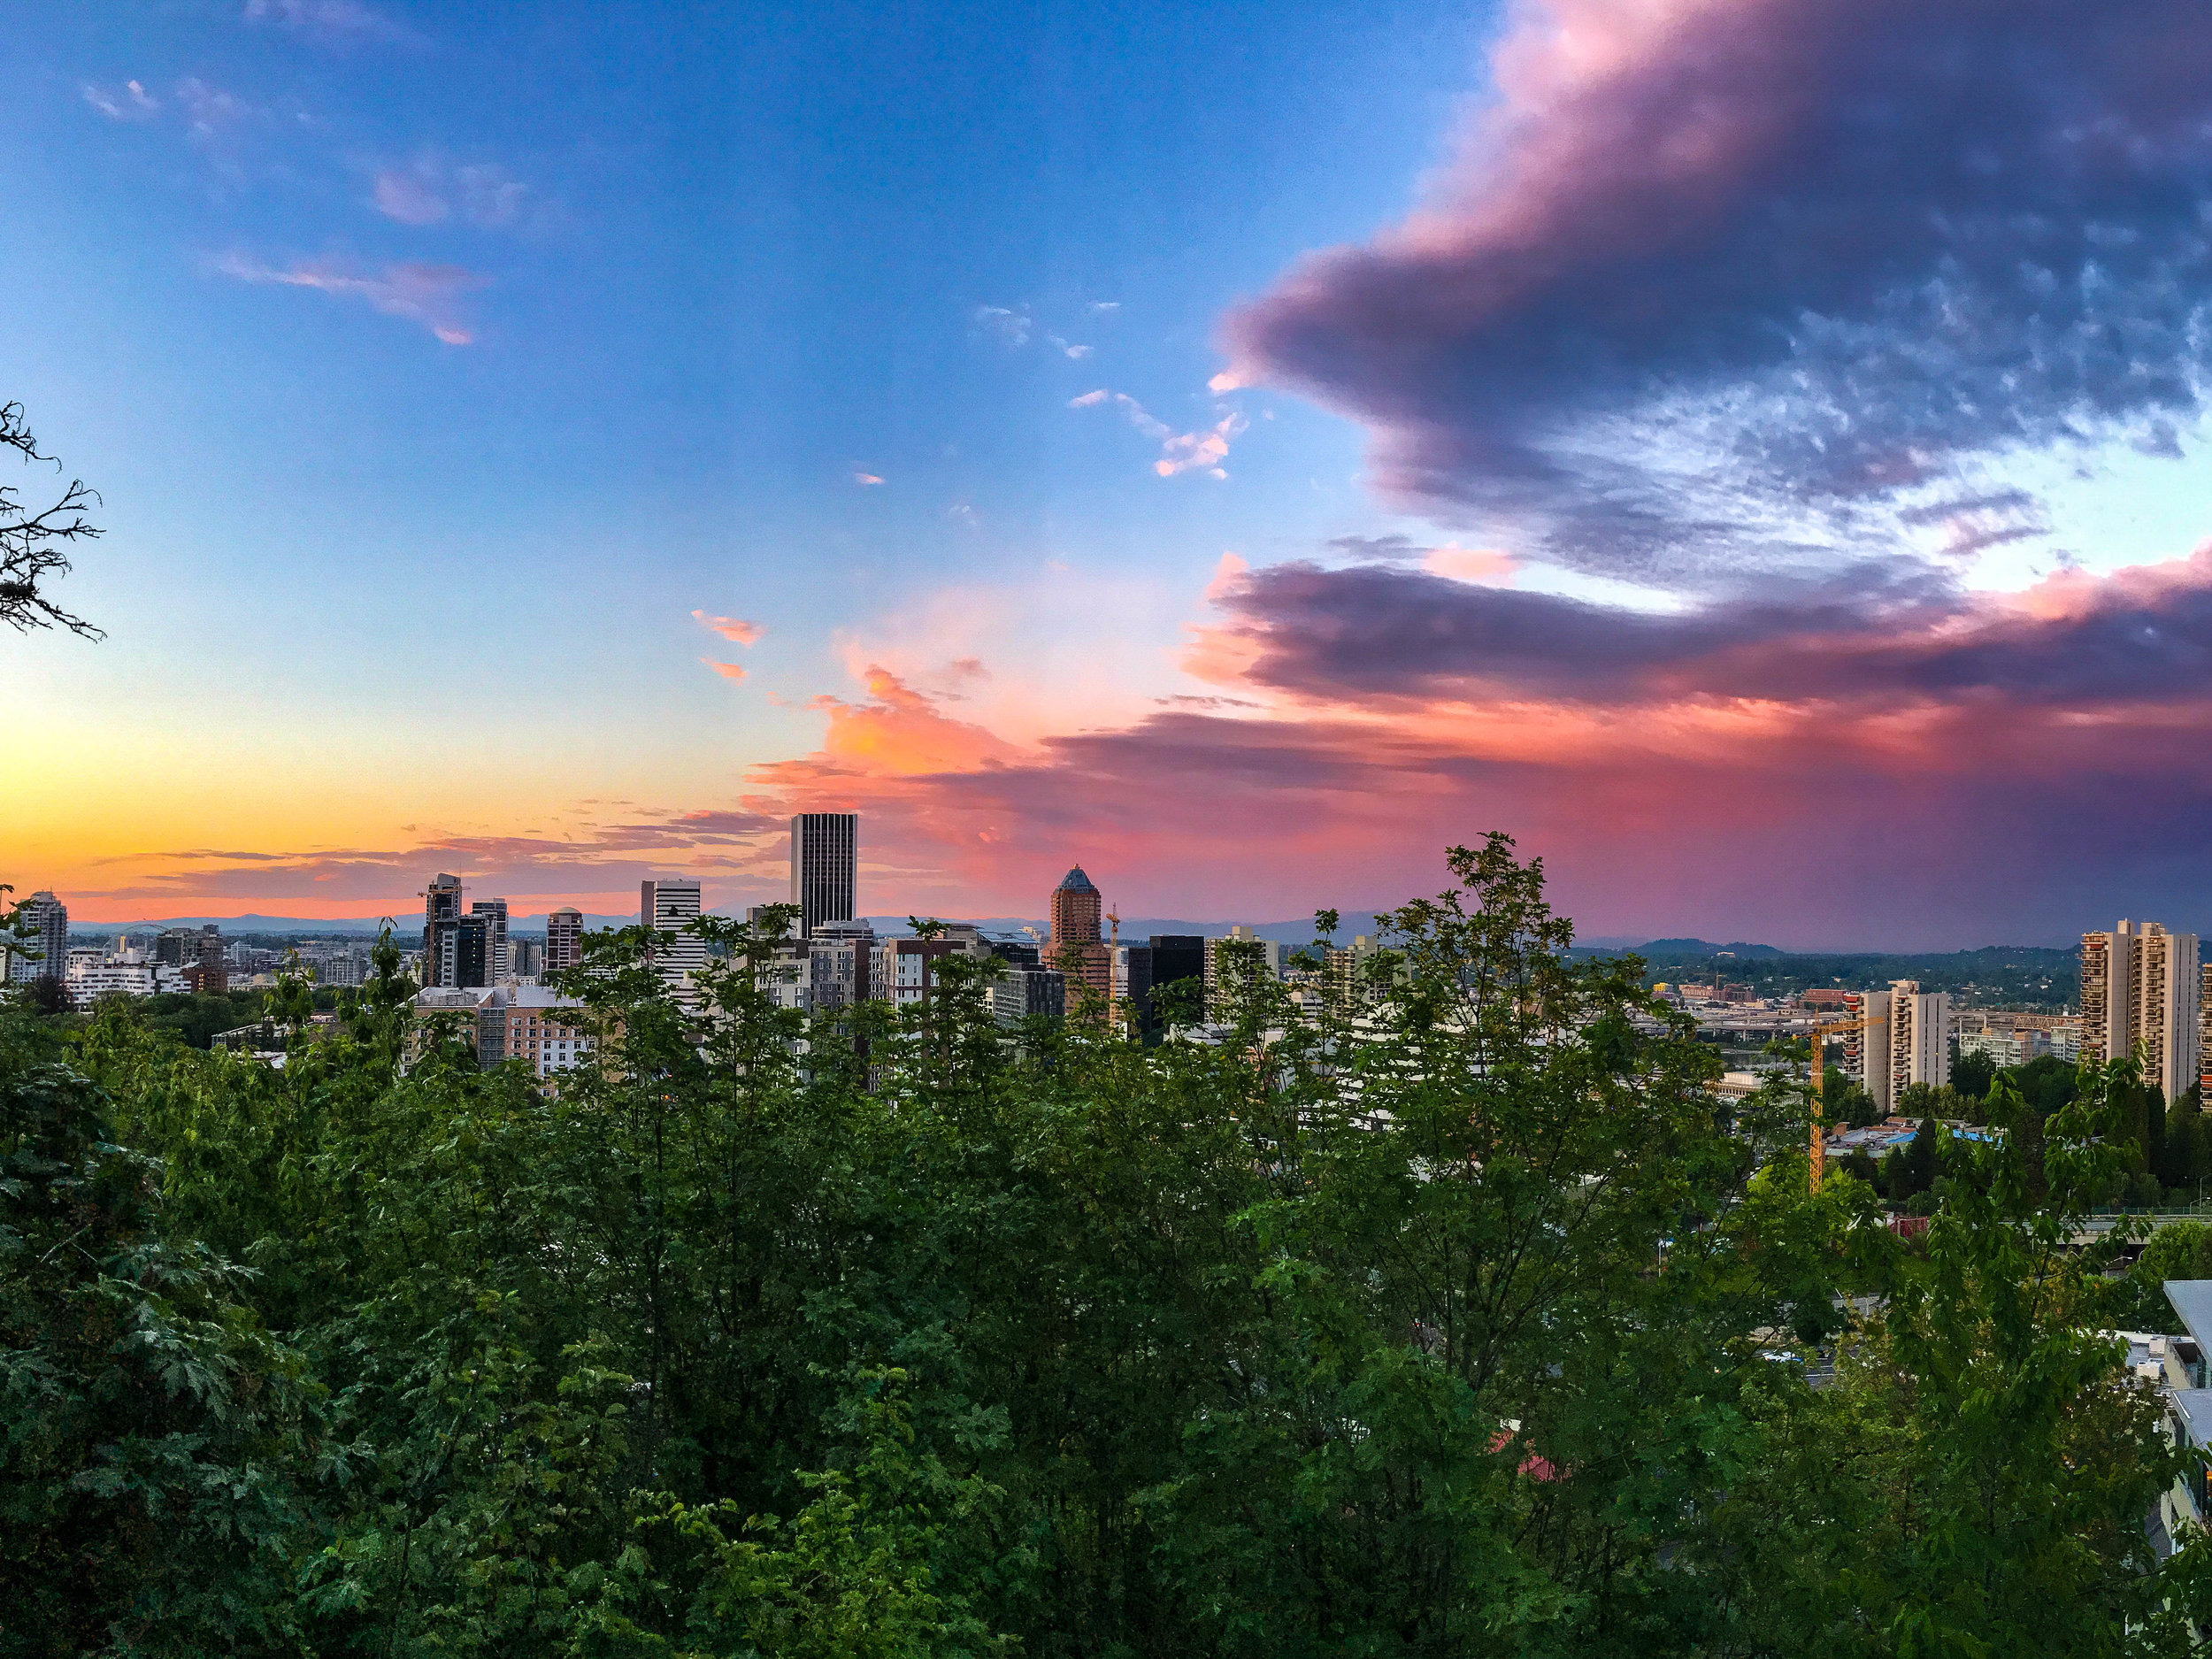 Sunset from our Airbnb in Portland